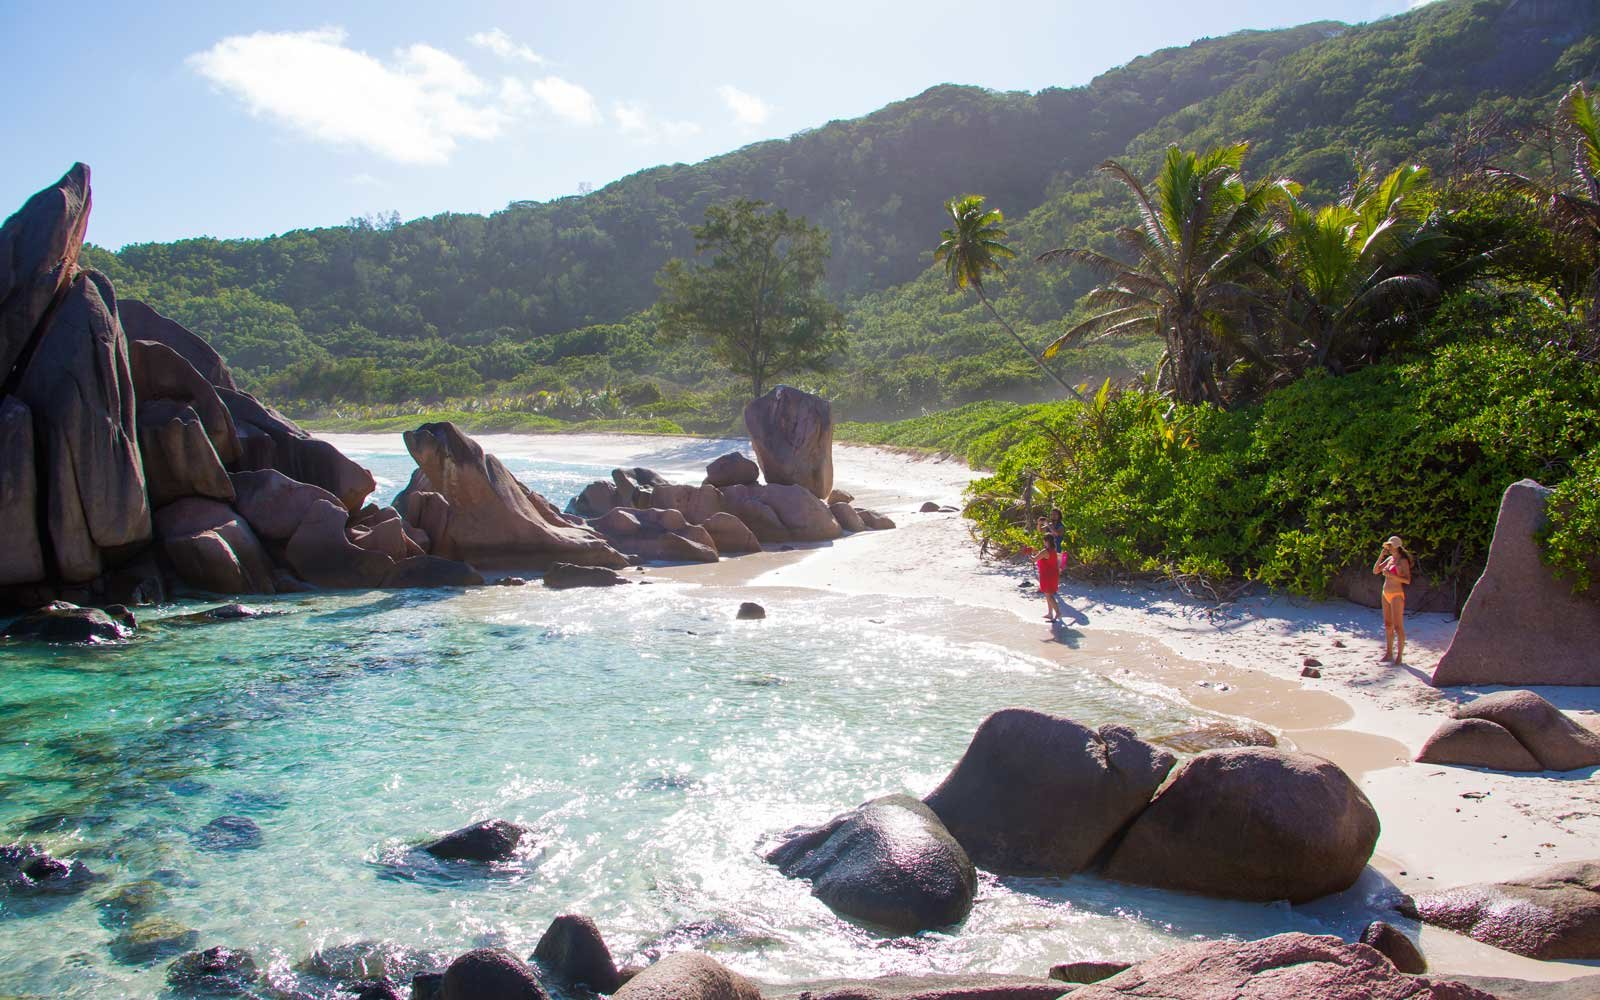 Tourists visit the famous Coco beach on October 03, 2015 in La Passe, La Digue, Seychelles.